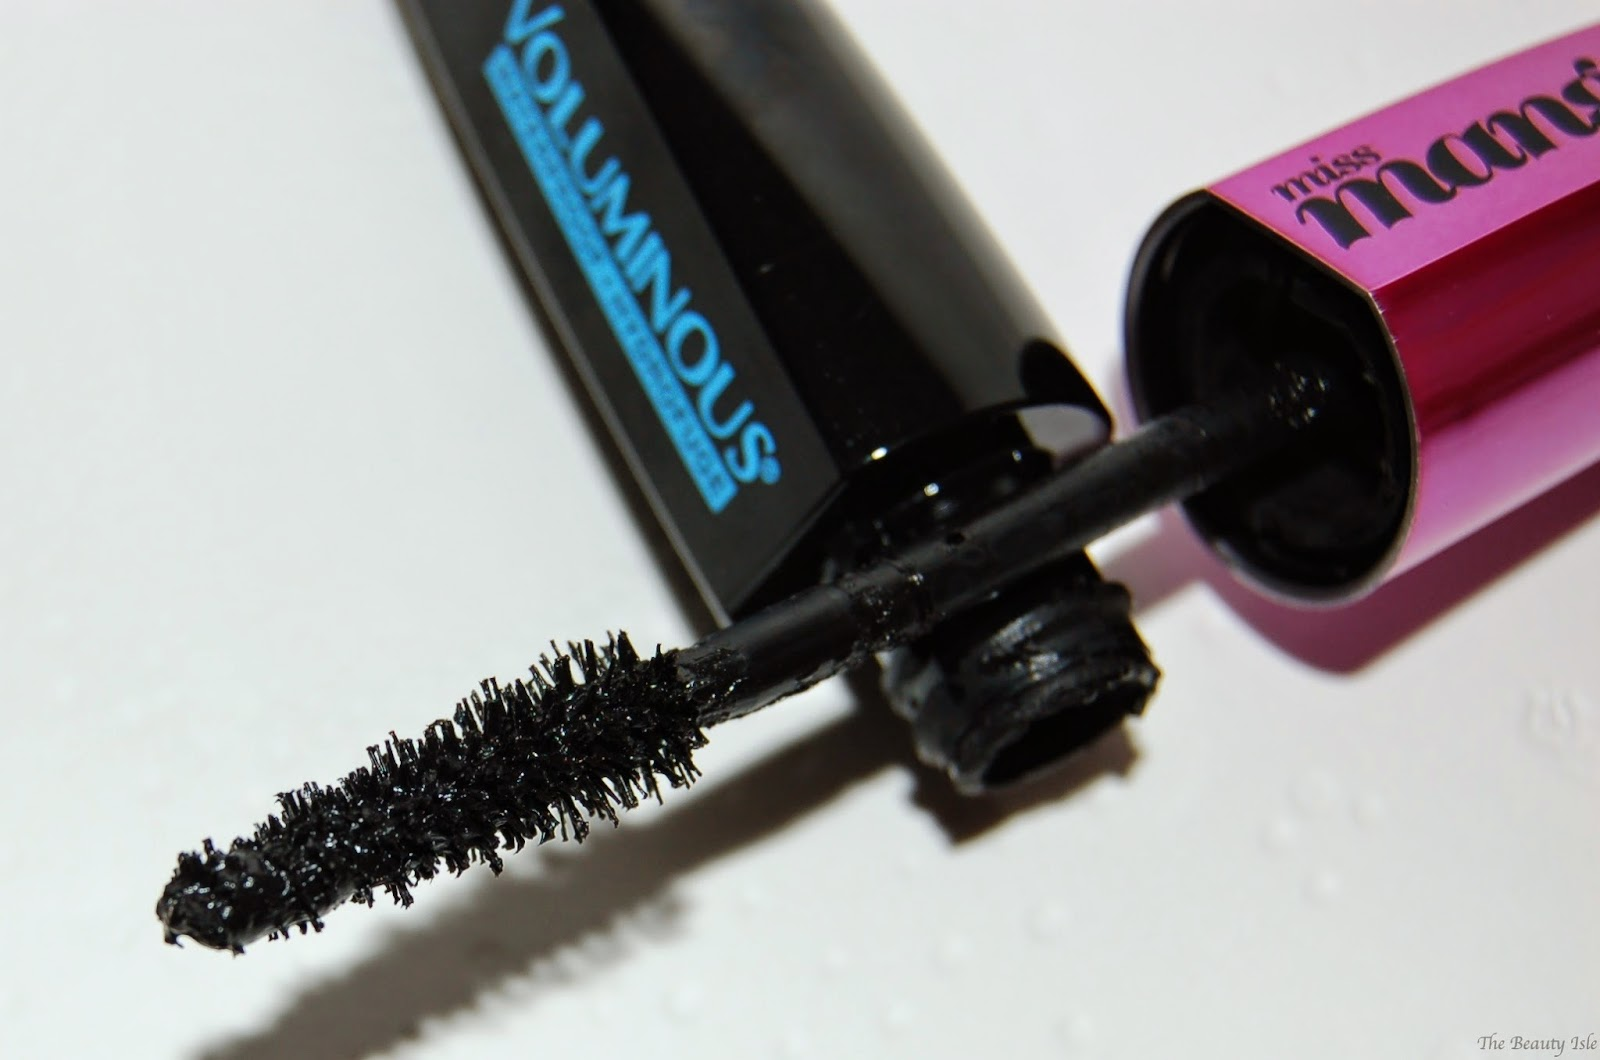 L'Oreal Voluminous Miss Manga Mascara